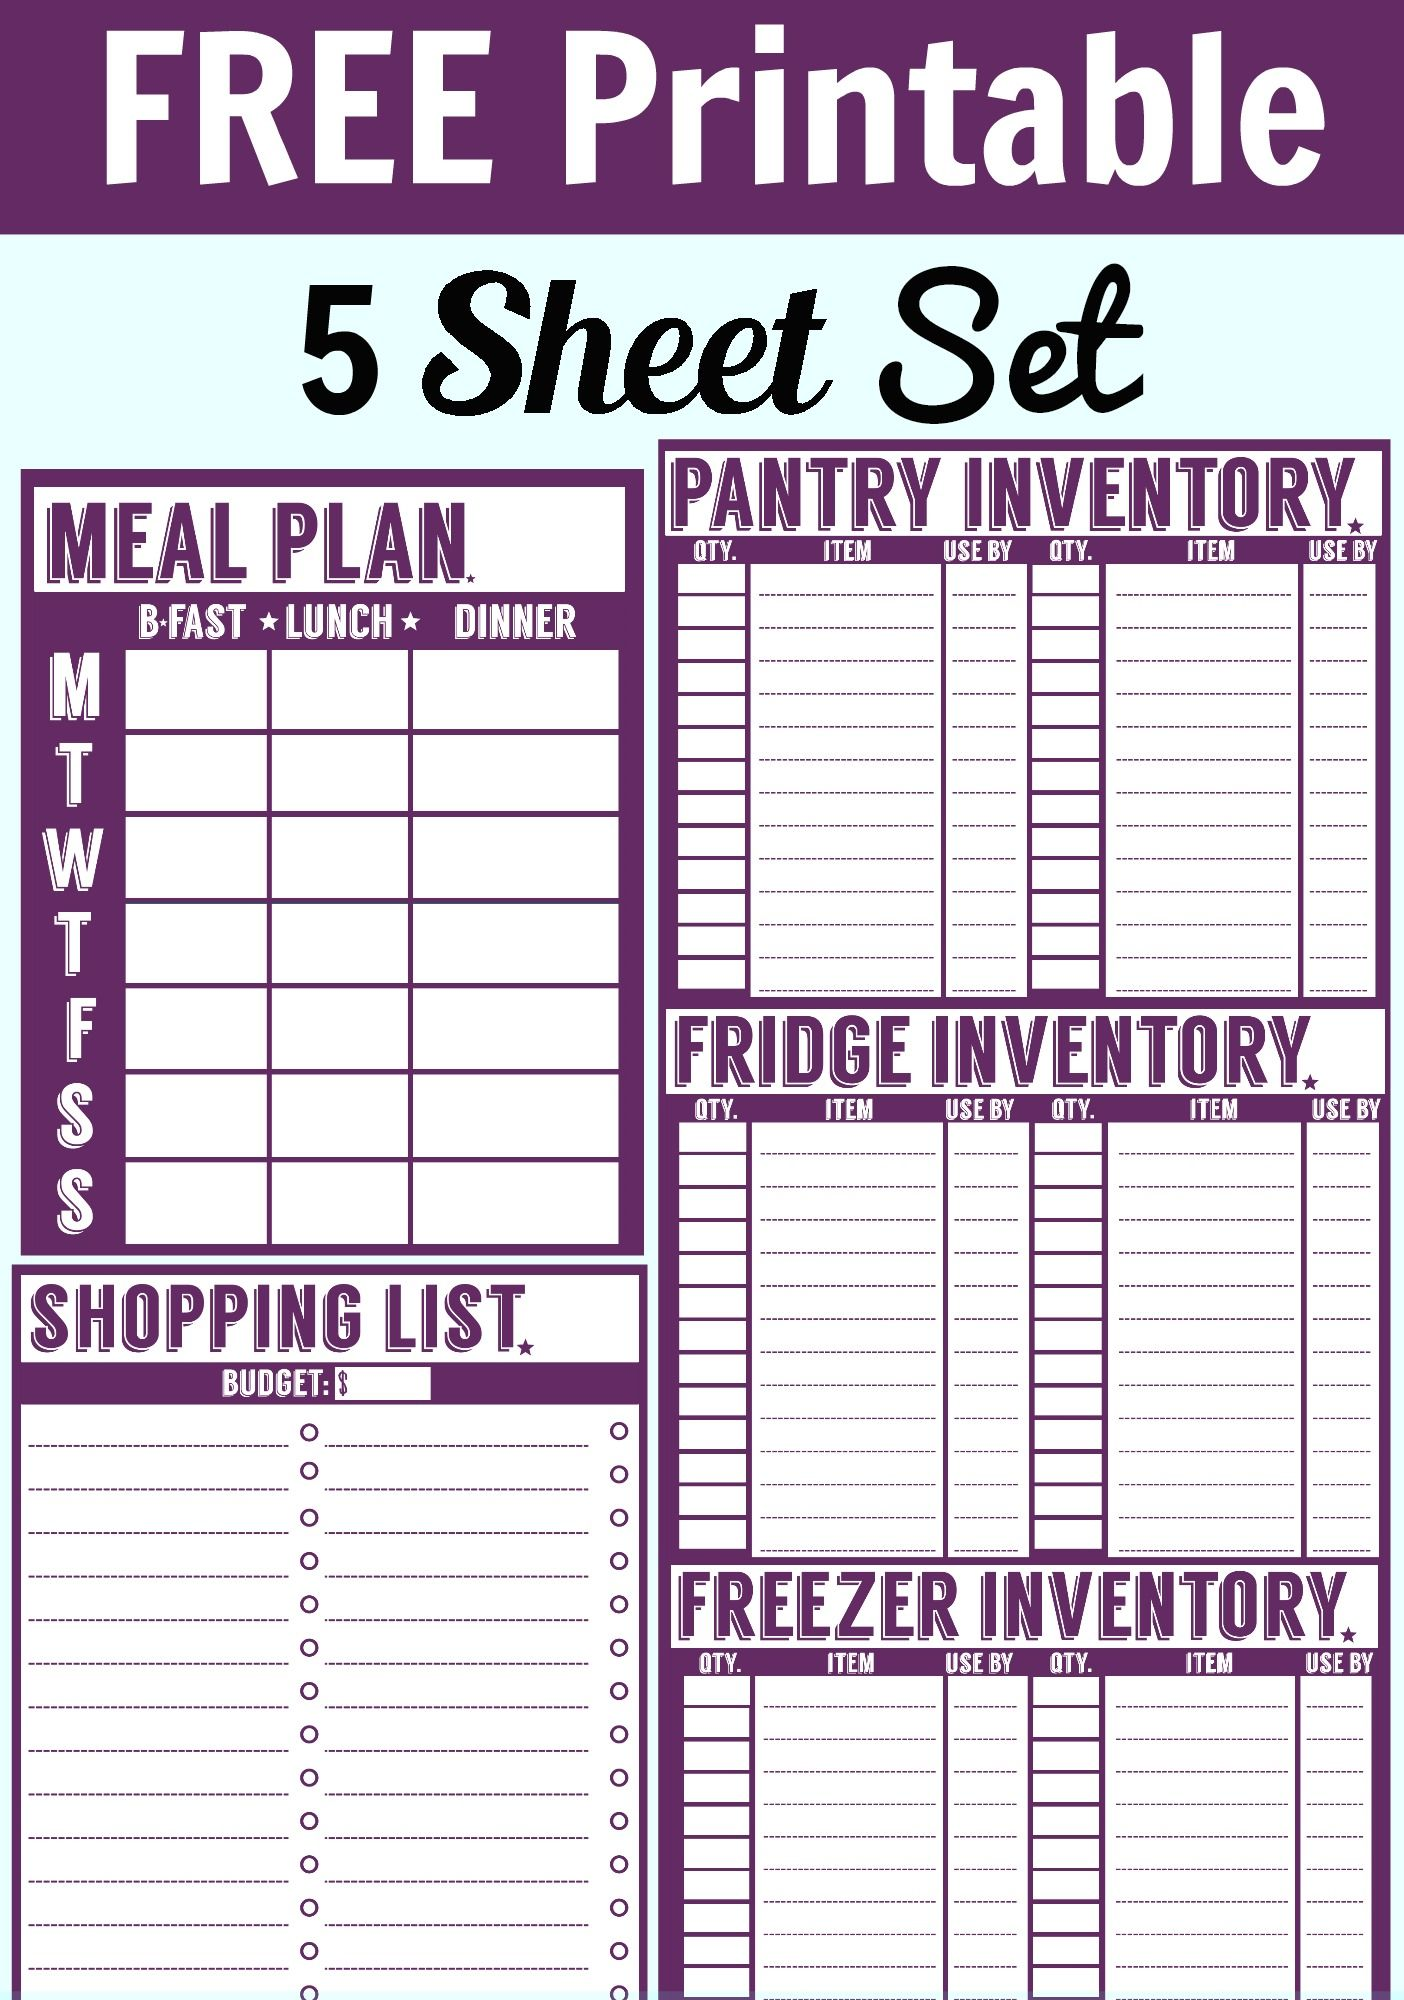 Free 5 Sheet Printable Set Includes A Menu Planner